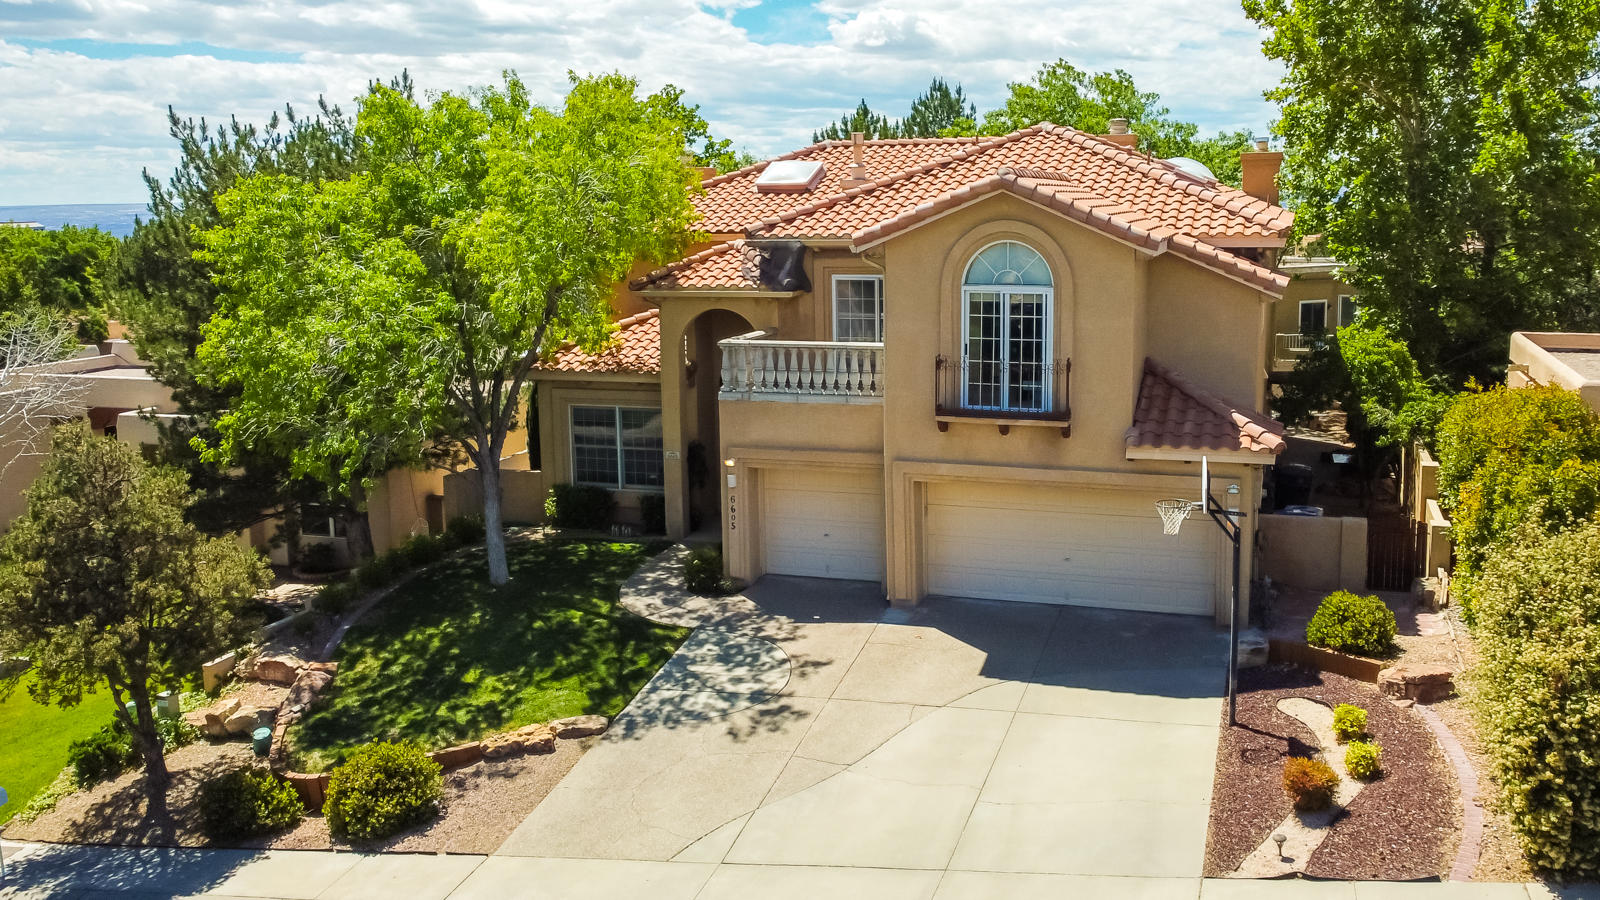 This beautiful custom home is nestled in a quiet cul-de-sac in Tanoan East, one of Albuquerque's most desirable communities.  Enjoy the privacy and security of this premier 24 hour guarded and gated community. This home is conveniently located just minutes from the Country Club as well. Inside, it has been beautifully updated and features a bright and open floor plan. On the main floor, there are 2 living and dining areas, a nicely updated kitchen, a grand foyer with a sweeping staircase, an office, and a bedroom with an en-suite bathroom. Upstairs you will find a beautiful master suite with a private balcony, a large bathroom and a walk in closet. There are also 3 additional bedrooms upstairs with another bath. The large backyard is nicely landscaped with grass and mature trees.